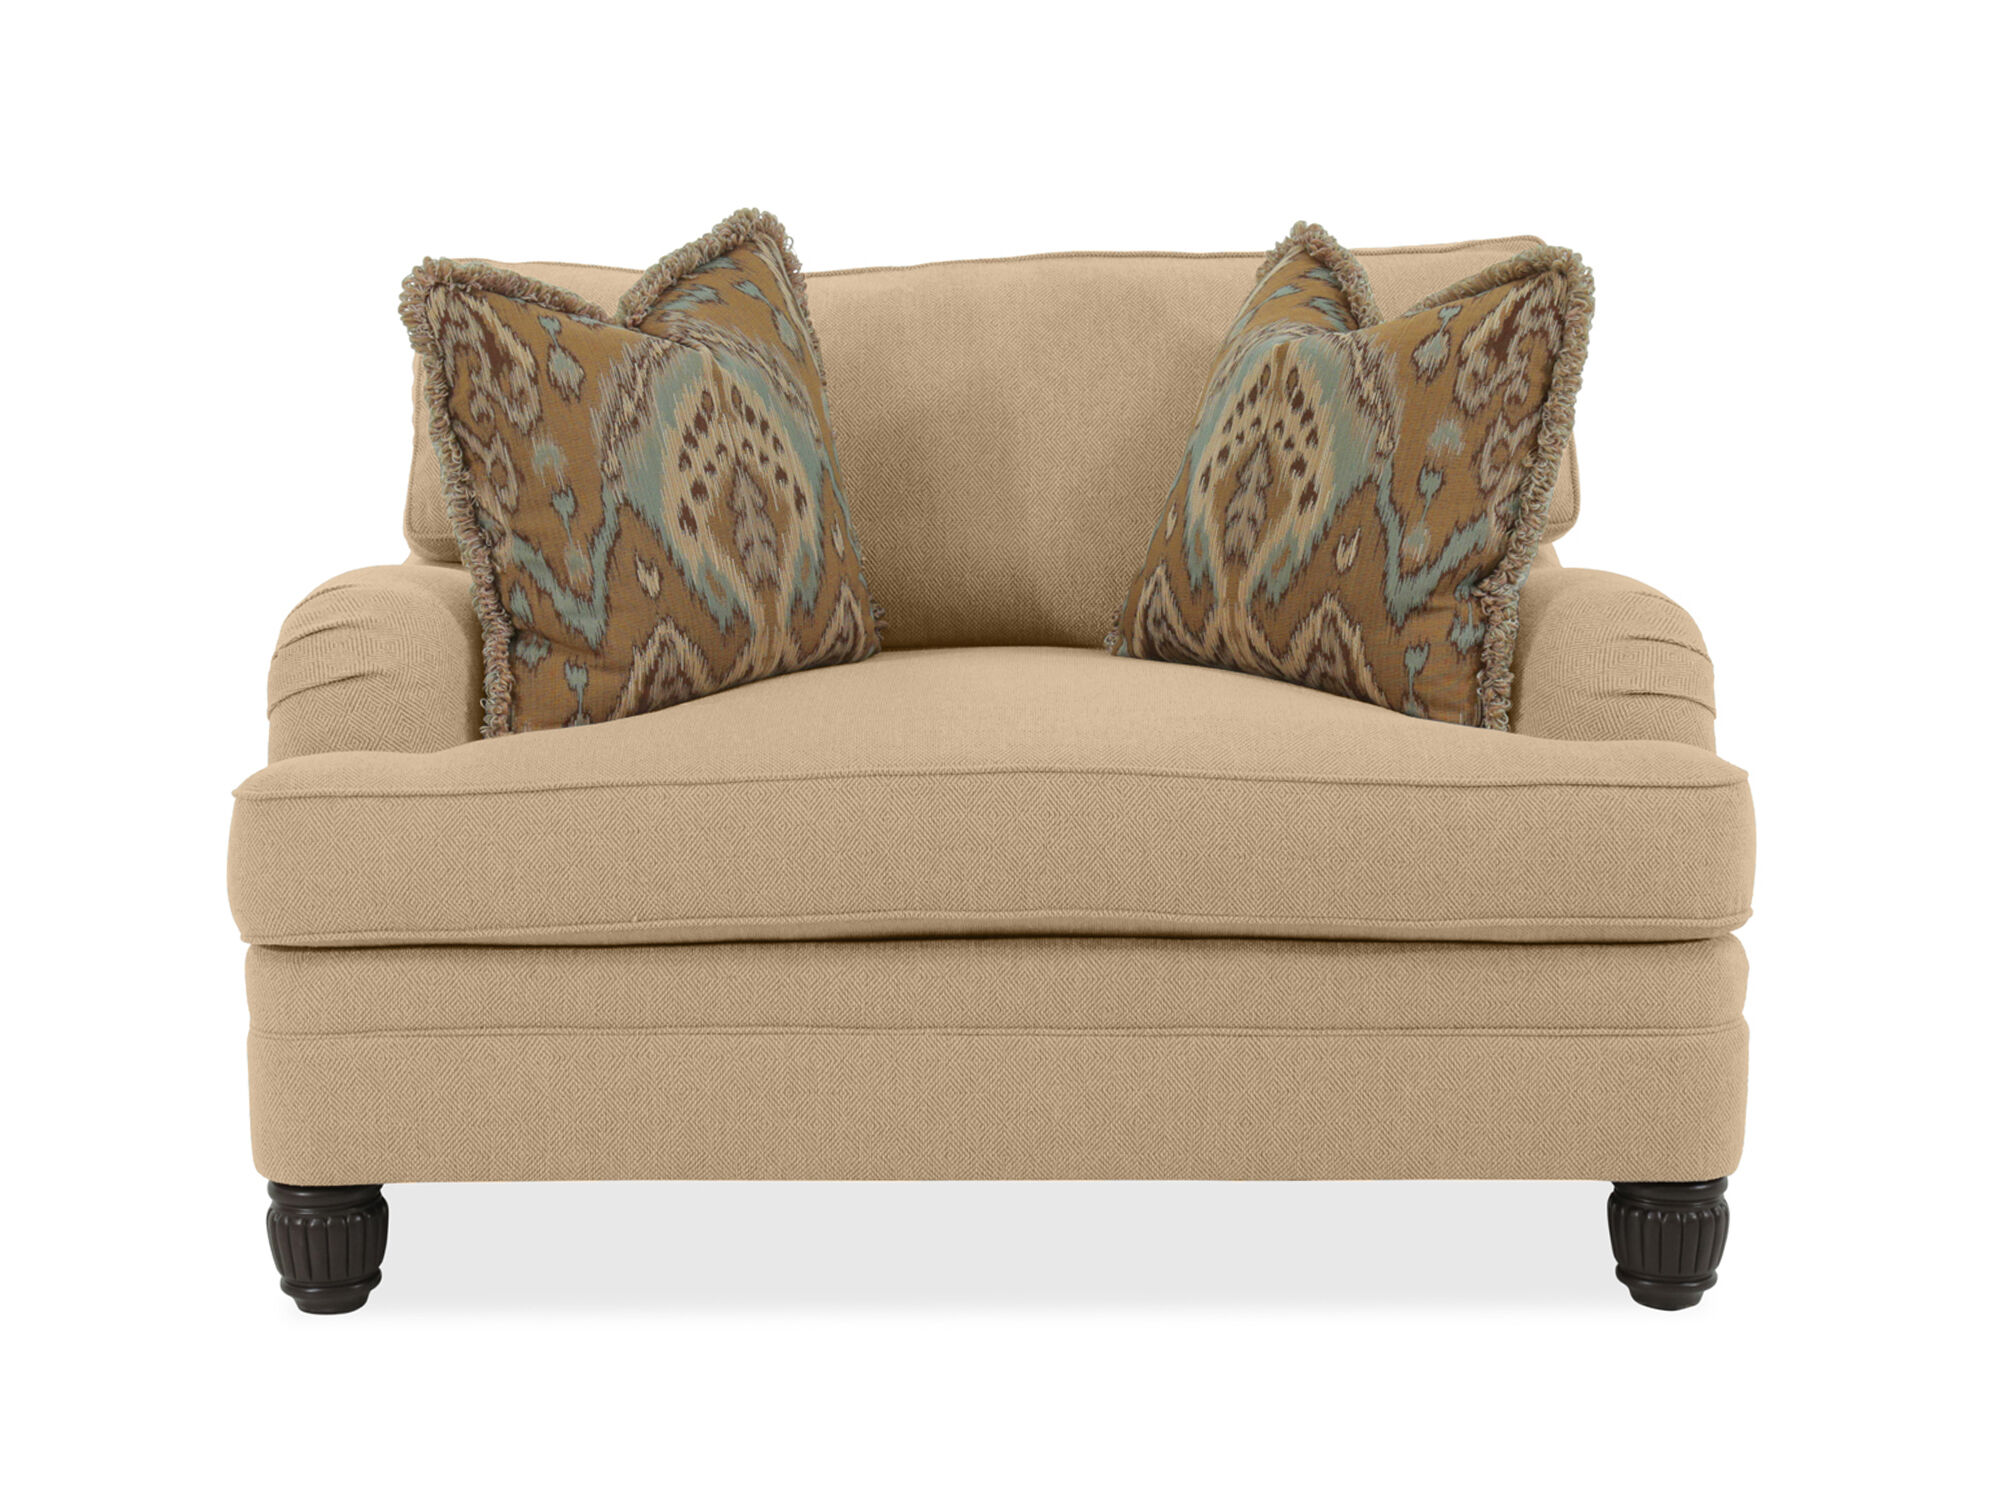 Merveilleux Images Diamond Textured Casual 54.5u0026quot; Chair And A Half In Beige Diamond  Textured Casual 54.5u0026quot; Chair And A Half In Beige